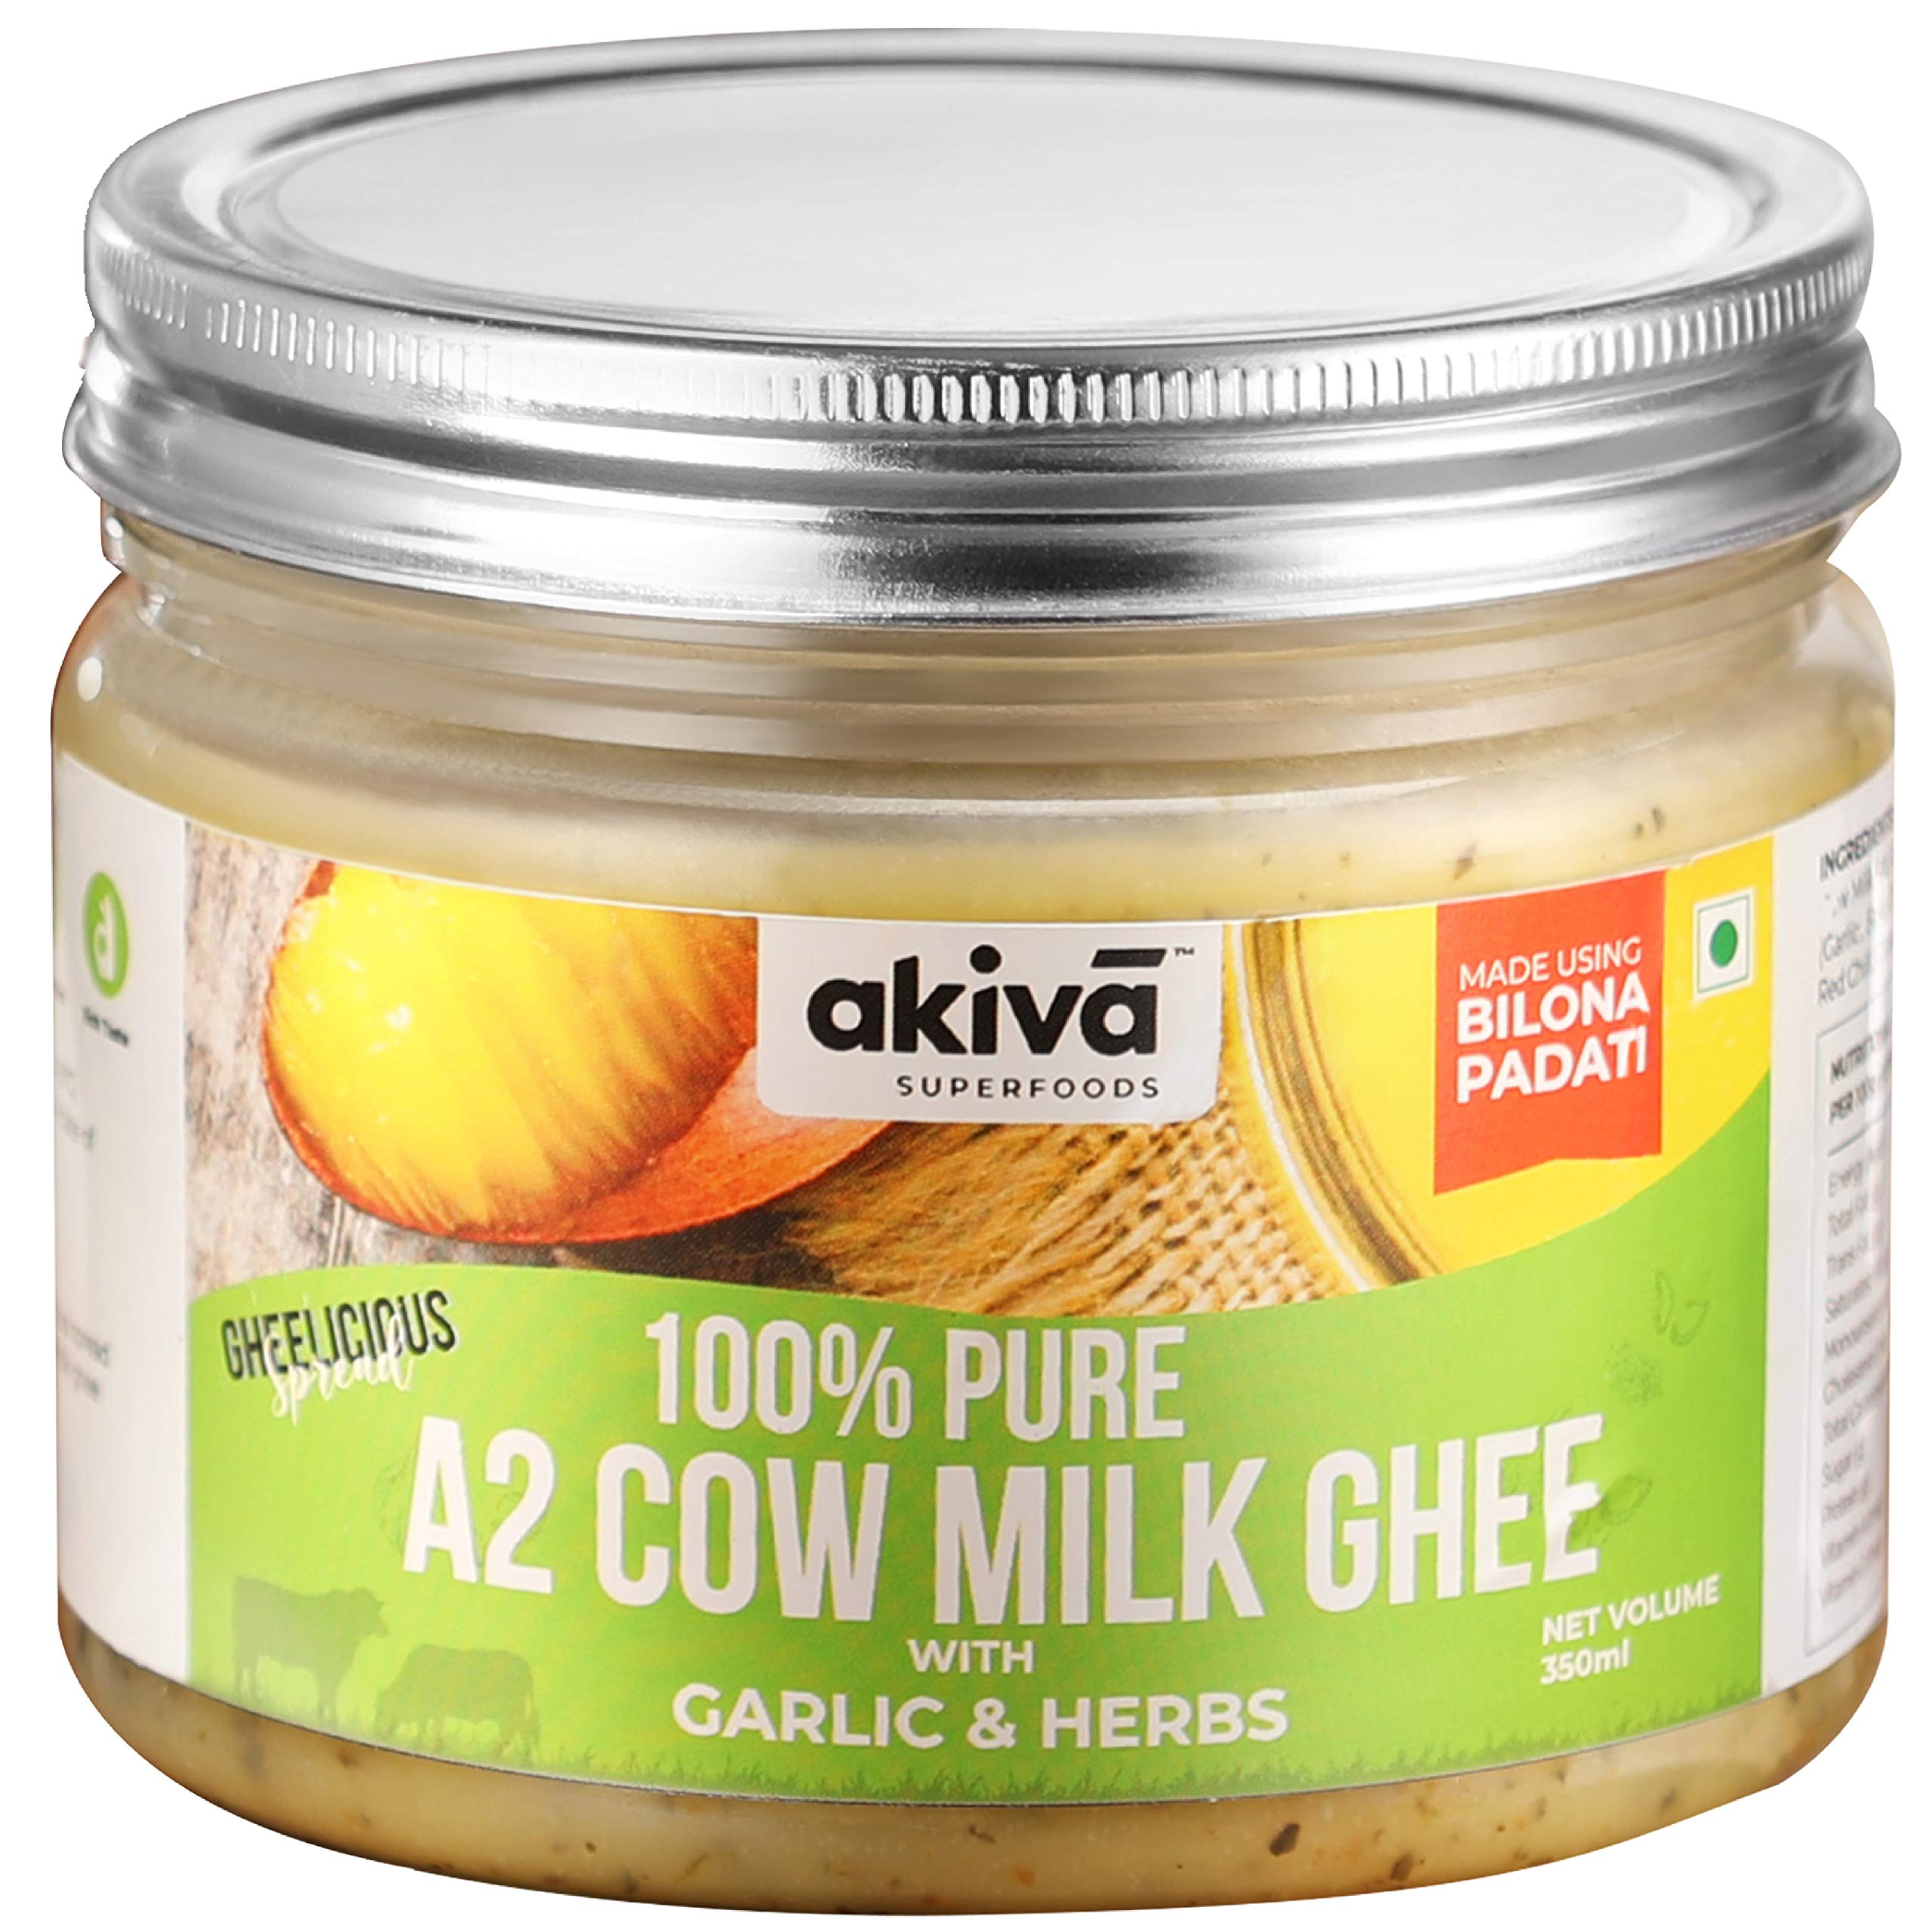 A2 Cow Ghee from Grass-Fed Desi Sahiwal Cow's Milk, 350 ml - Garlic and Herbs Flavour - Made from Curd by Traditional Vedic Bilona Padati Method - Non GMO - Gluten Free - For Keto Friendly Diet by Akiva Superfoods (B07XZD8CNM) Amazon Price History, Amazon Price Tracker